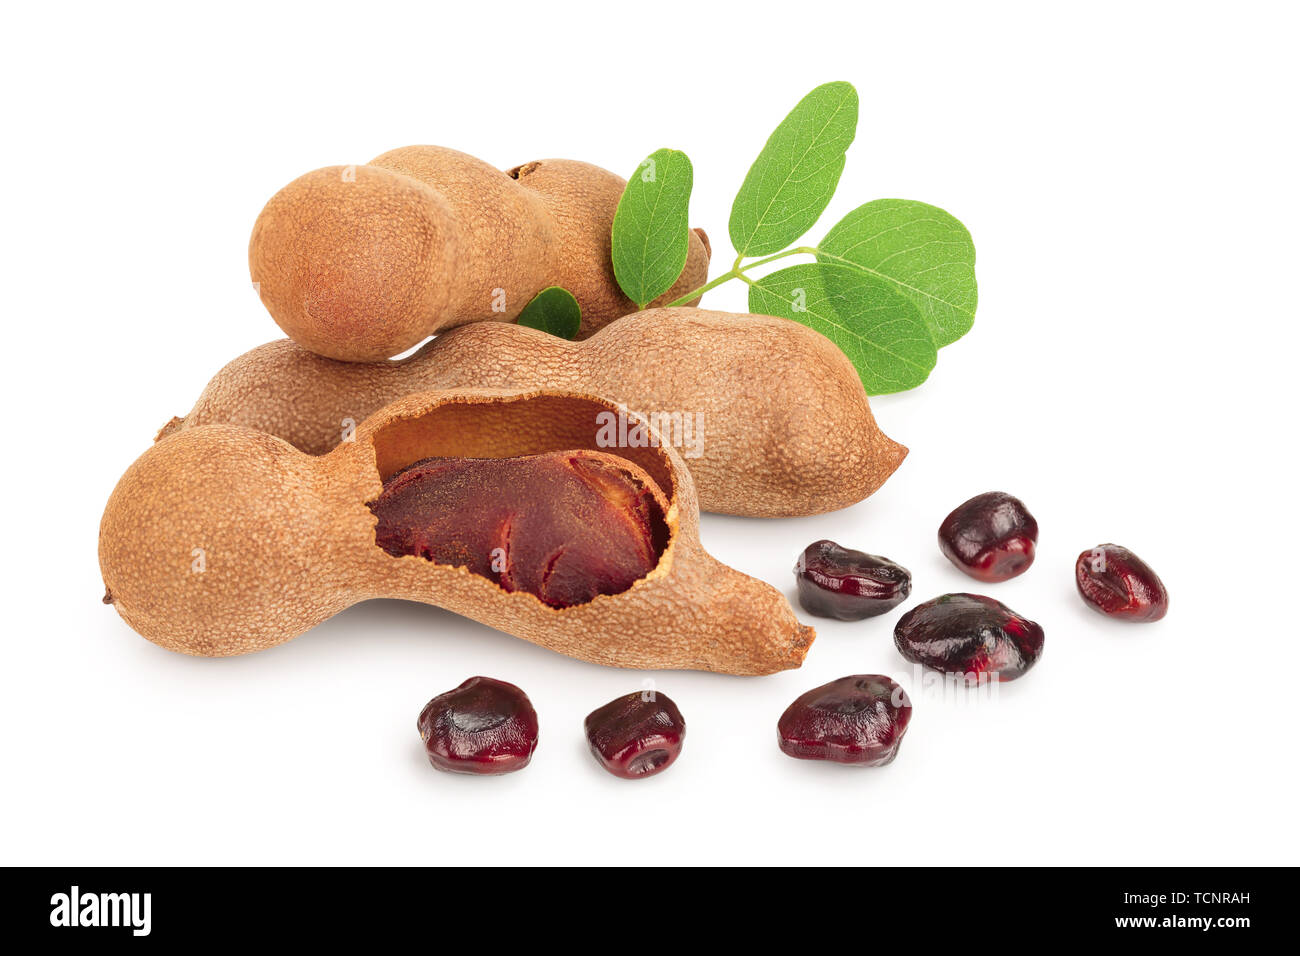 Where Is Tamarind Fruit From